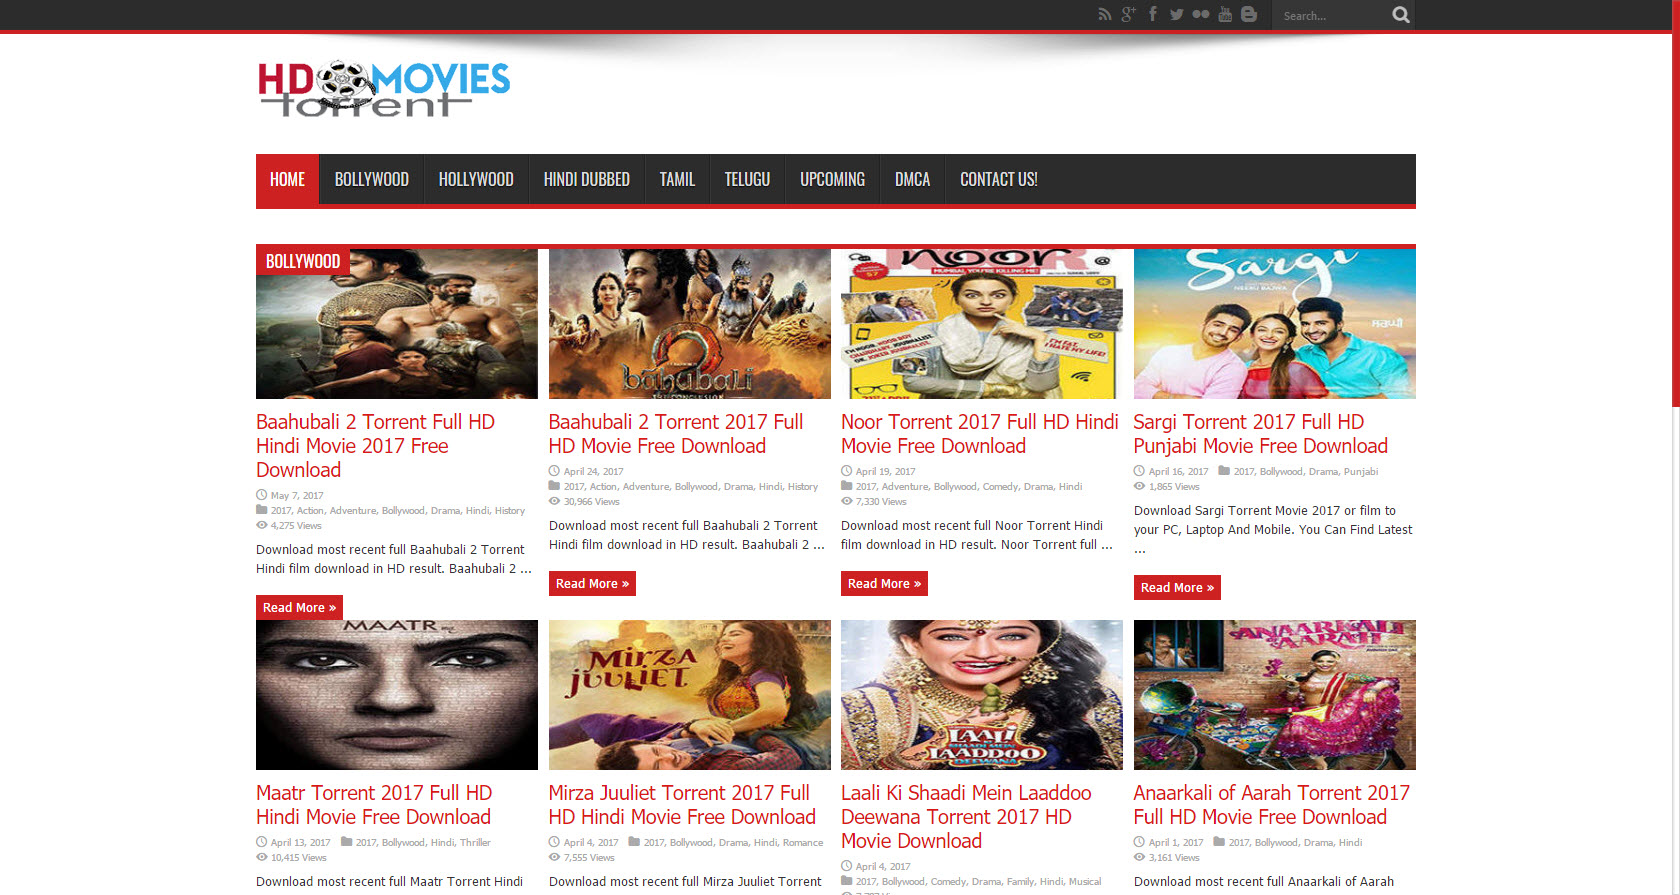 hd torrent movies - visit now